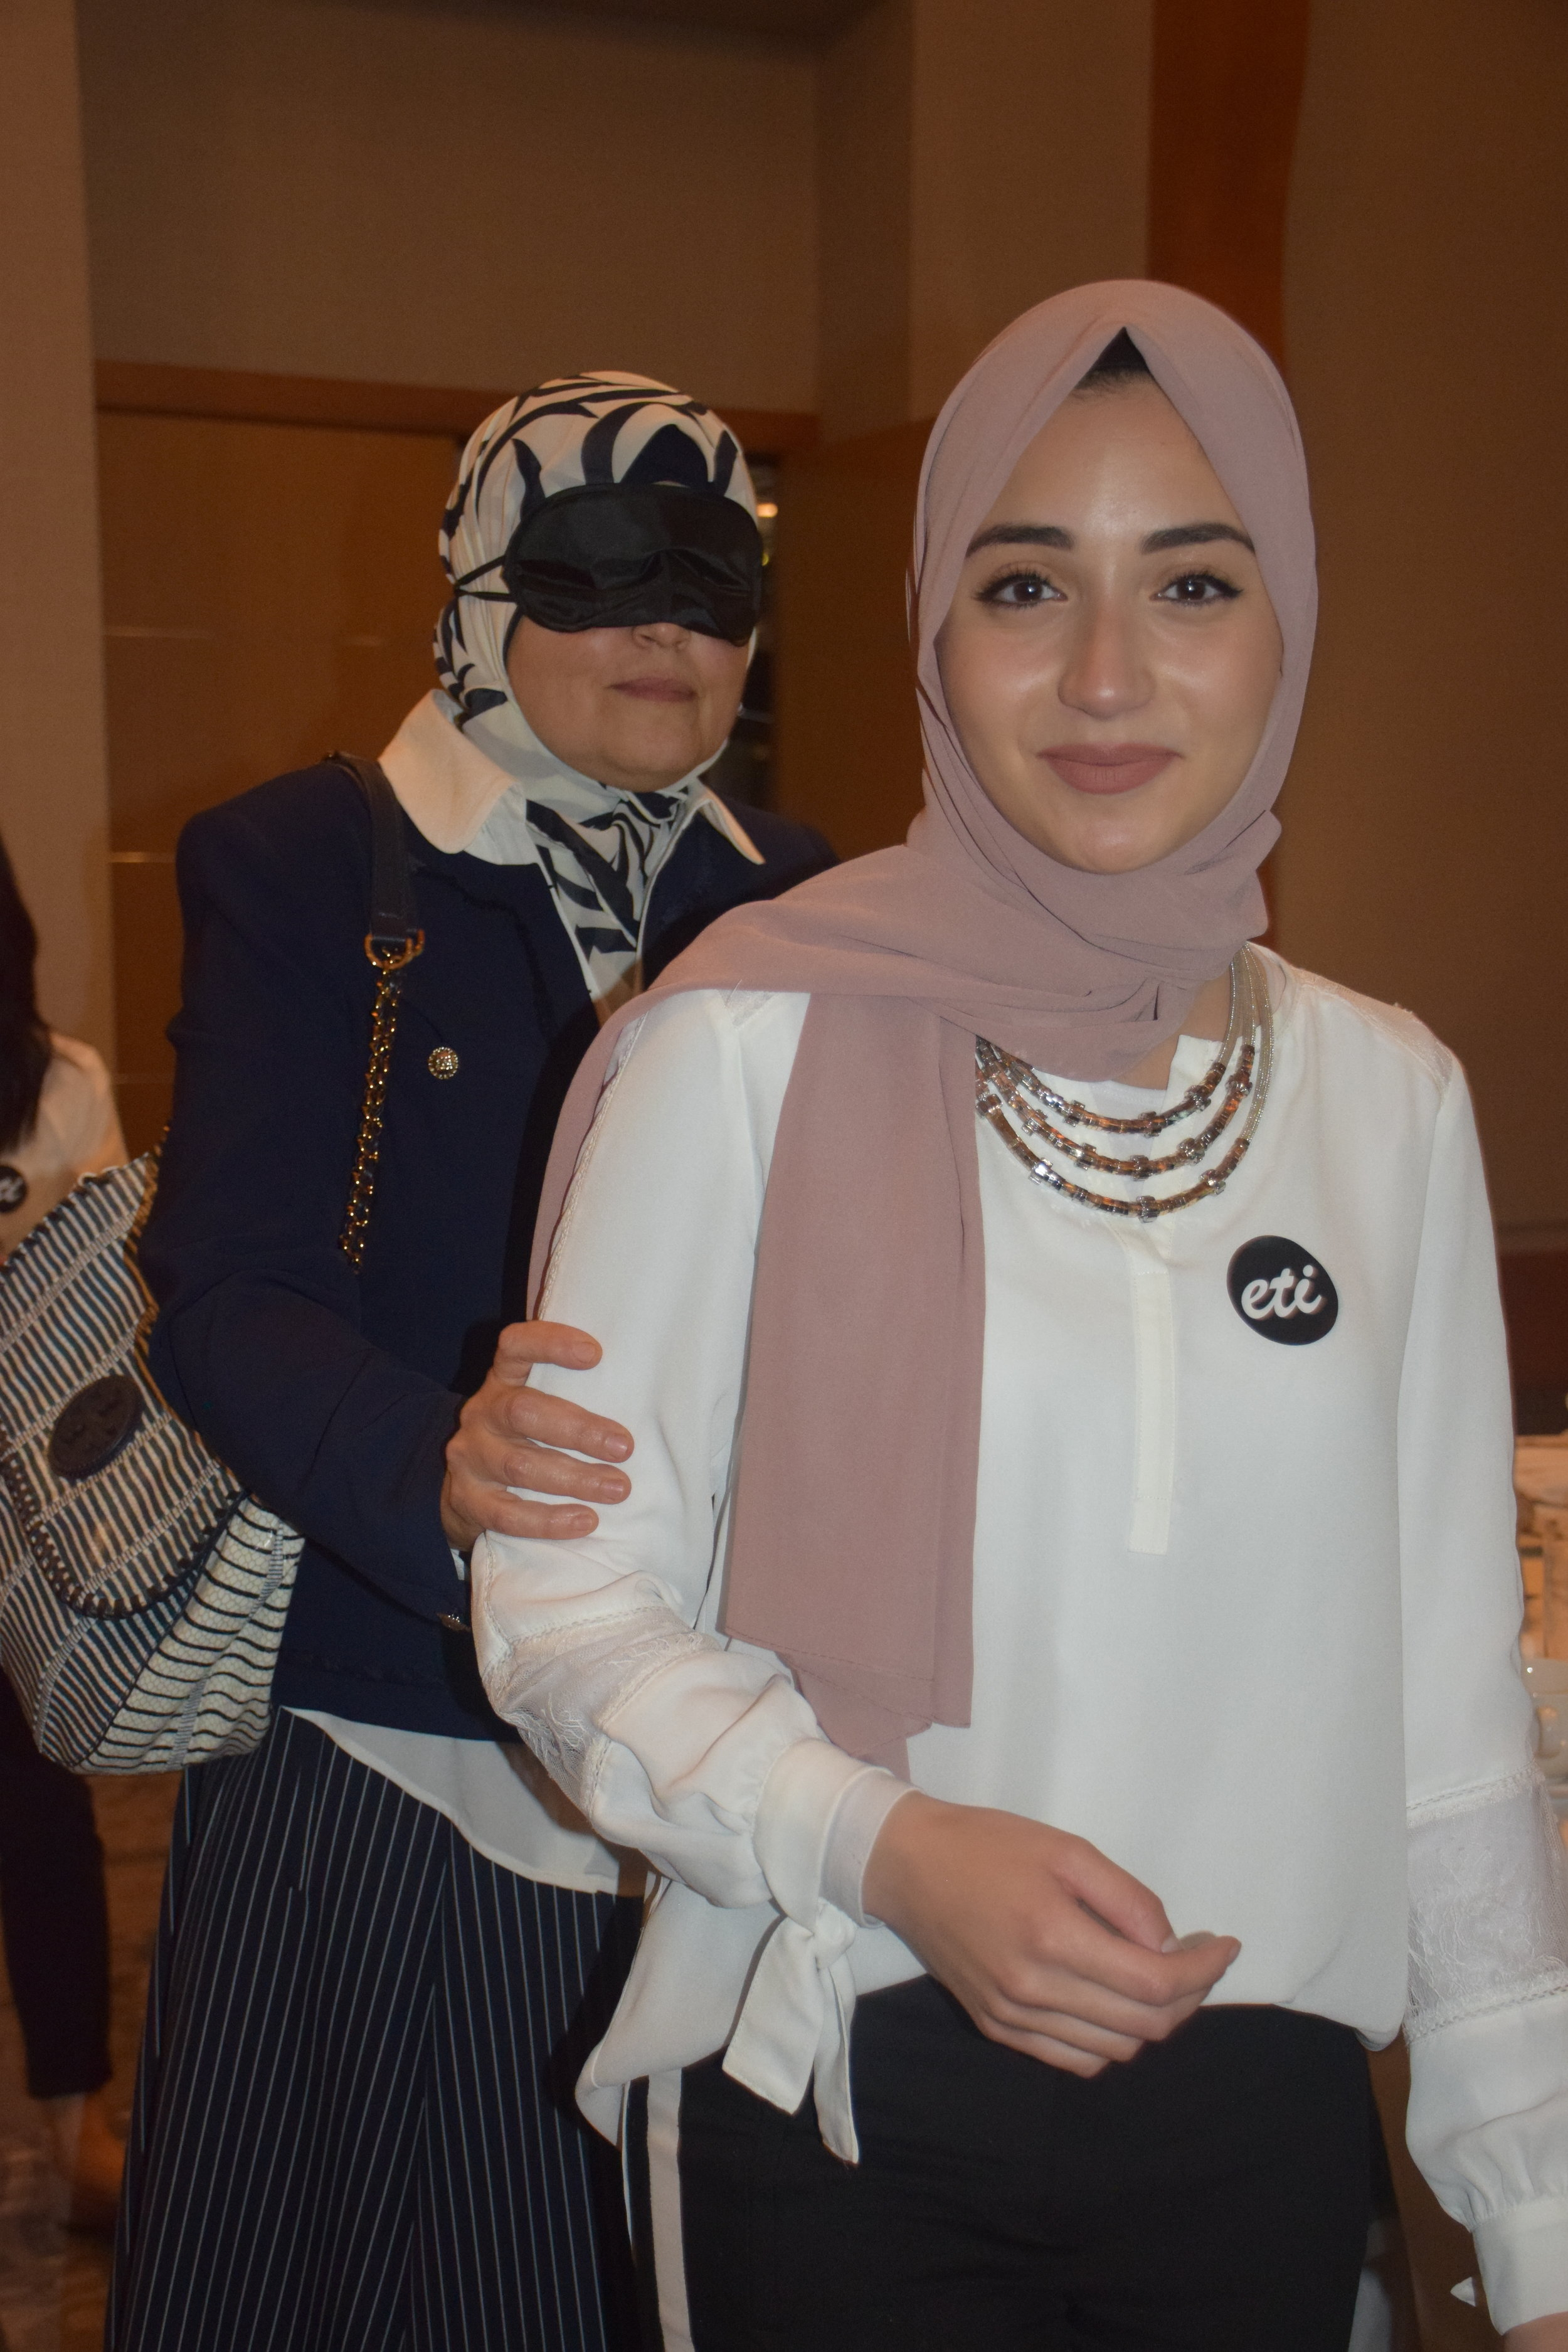 In this photo: An ETI sighted guide volunteer leads a blindfolded Dining in the Dark guest to her seat